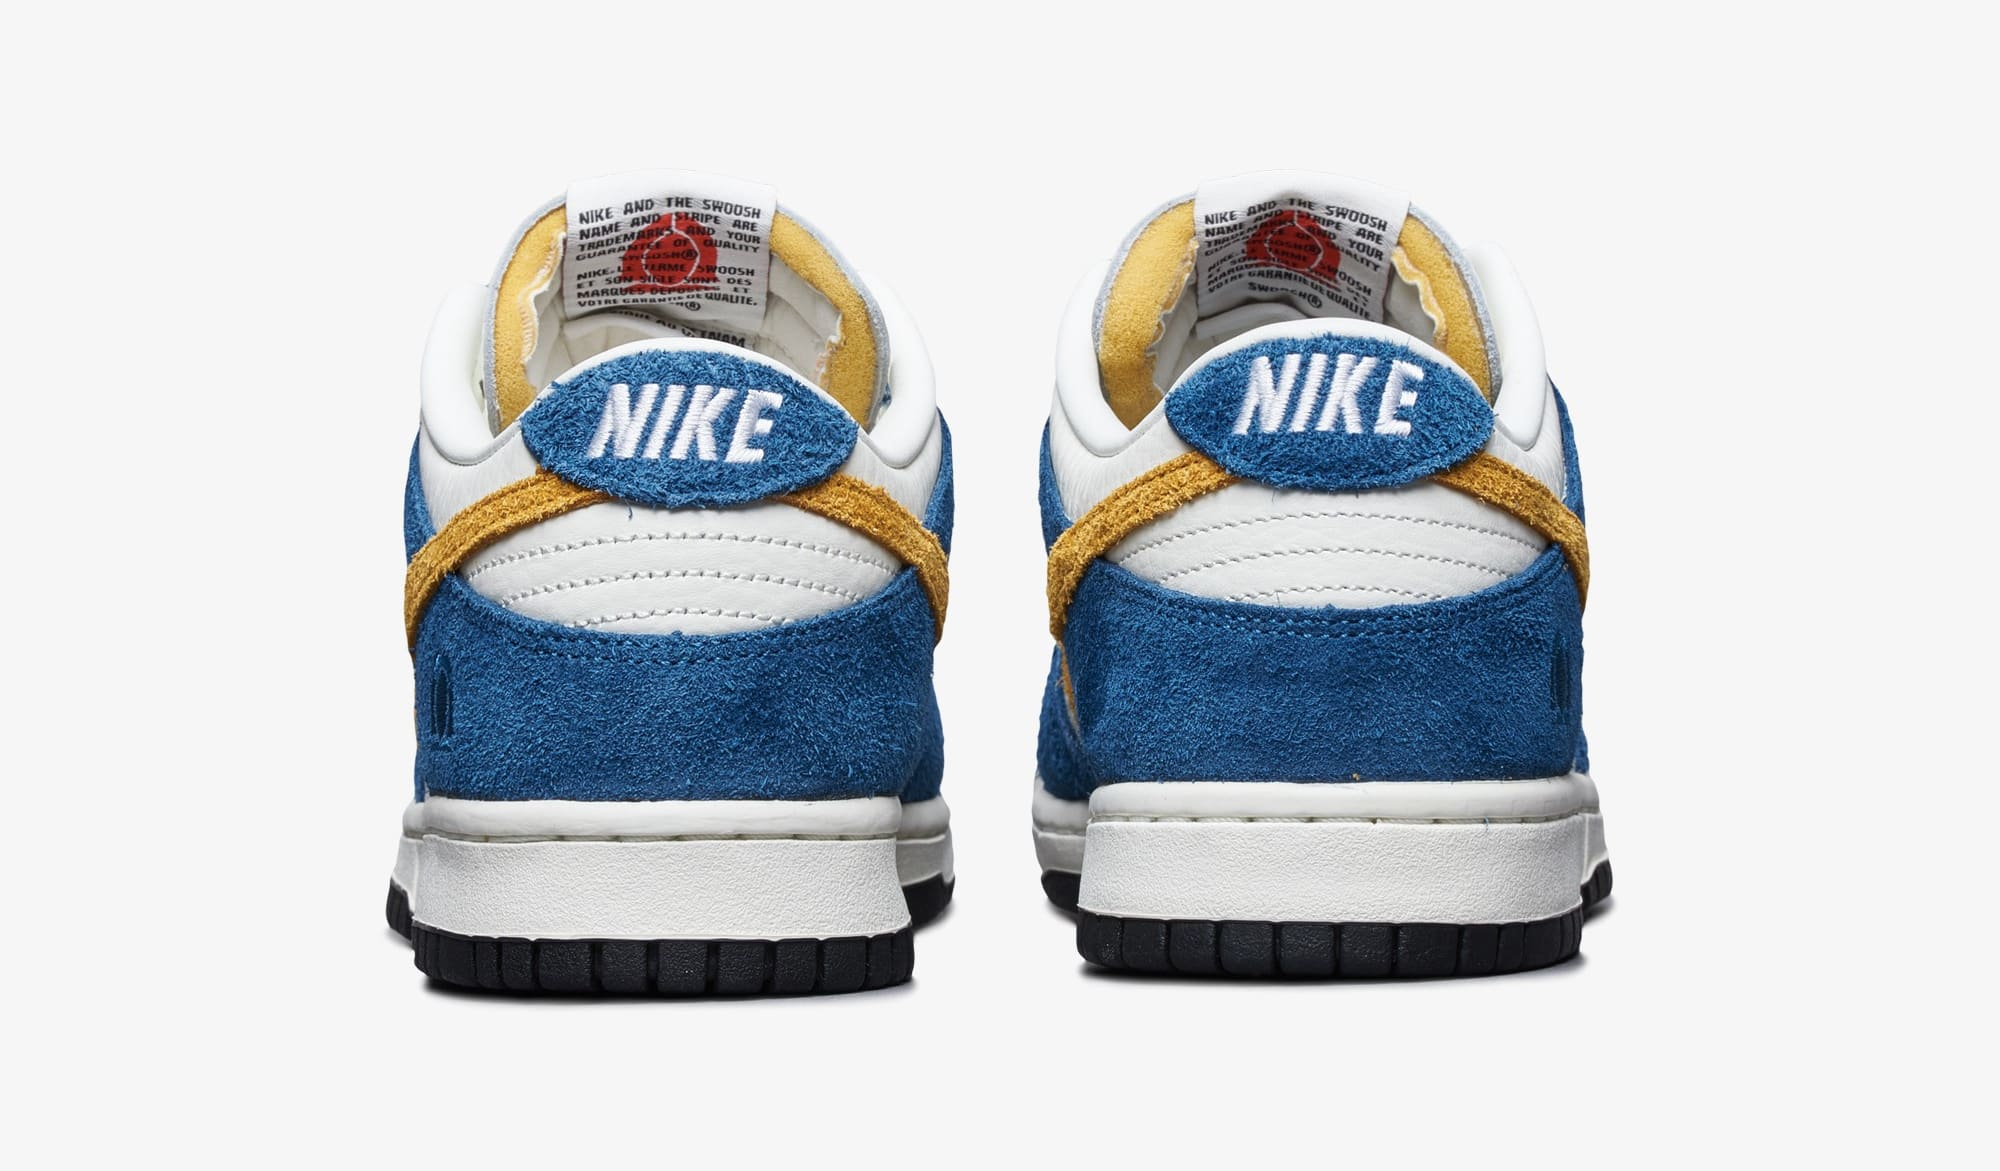 Kasina x Nike Dunk Low 'Industrial Blue' CZ6501-100 Heel